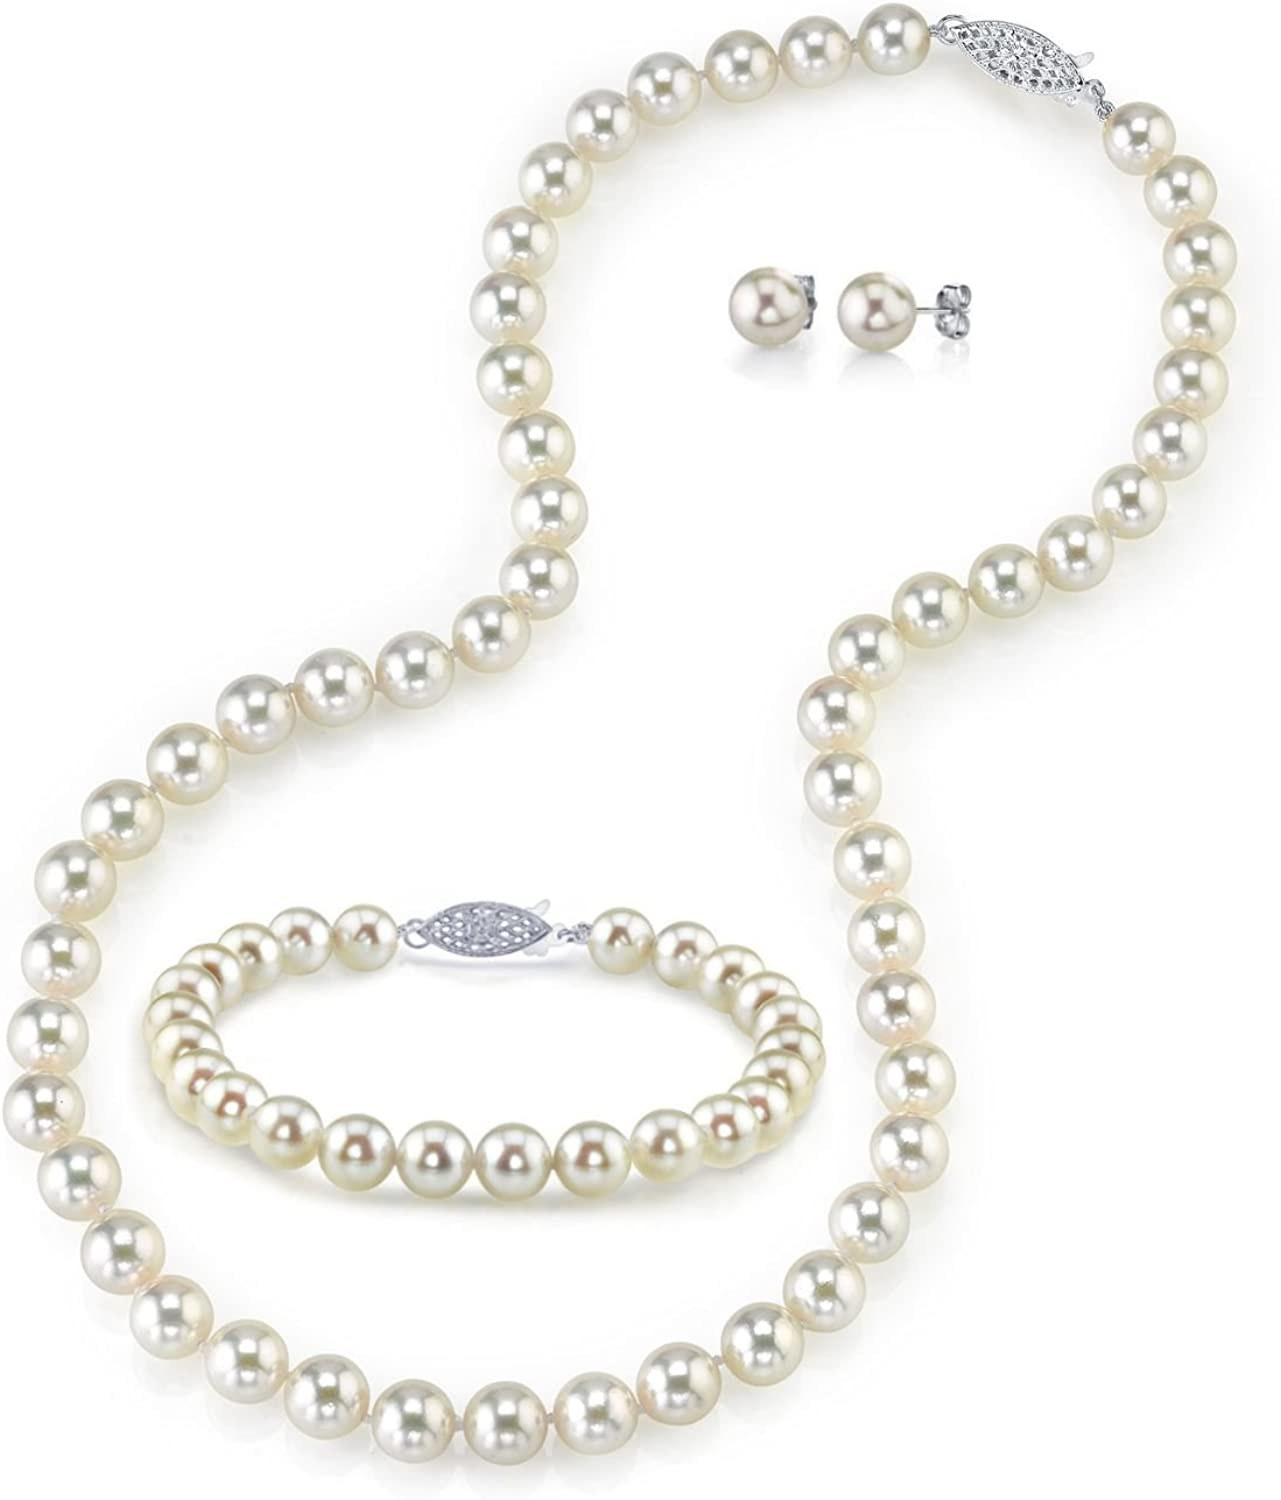 THE PEARL SOURCE 14K Gold 7.5-8mm Round White Akoya Cultured Pearl Necklace, Bracelet & Earrings Set for Women